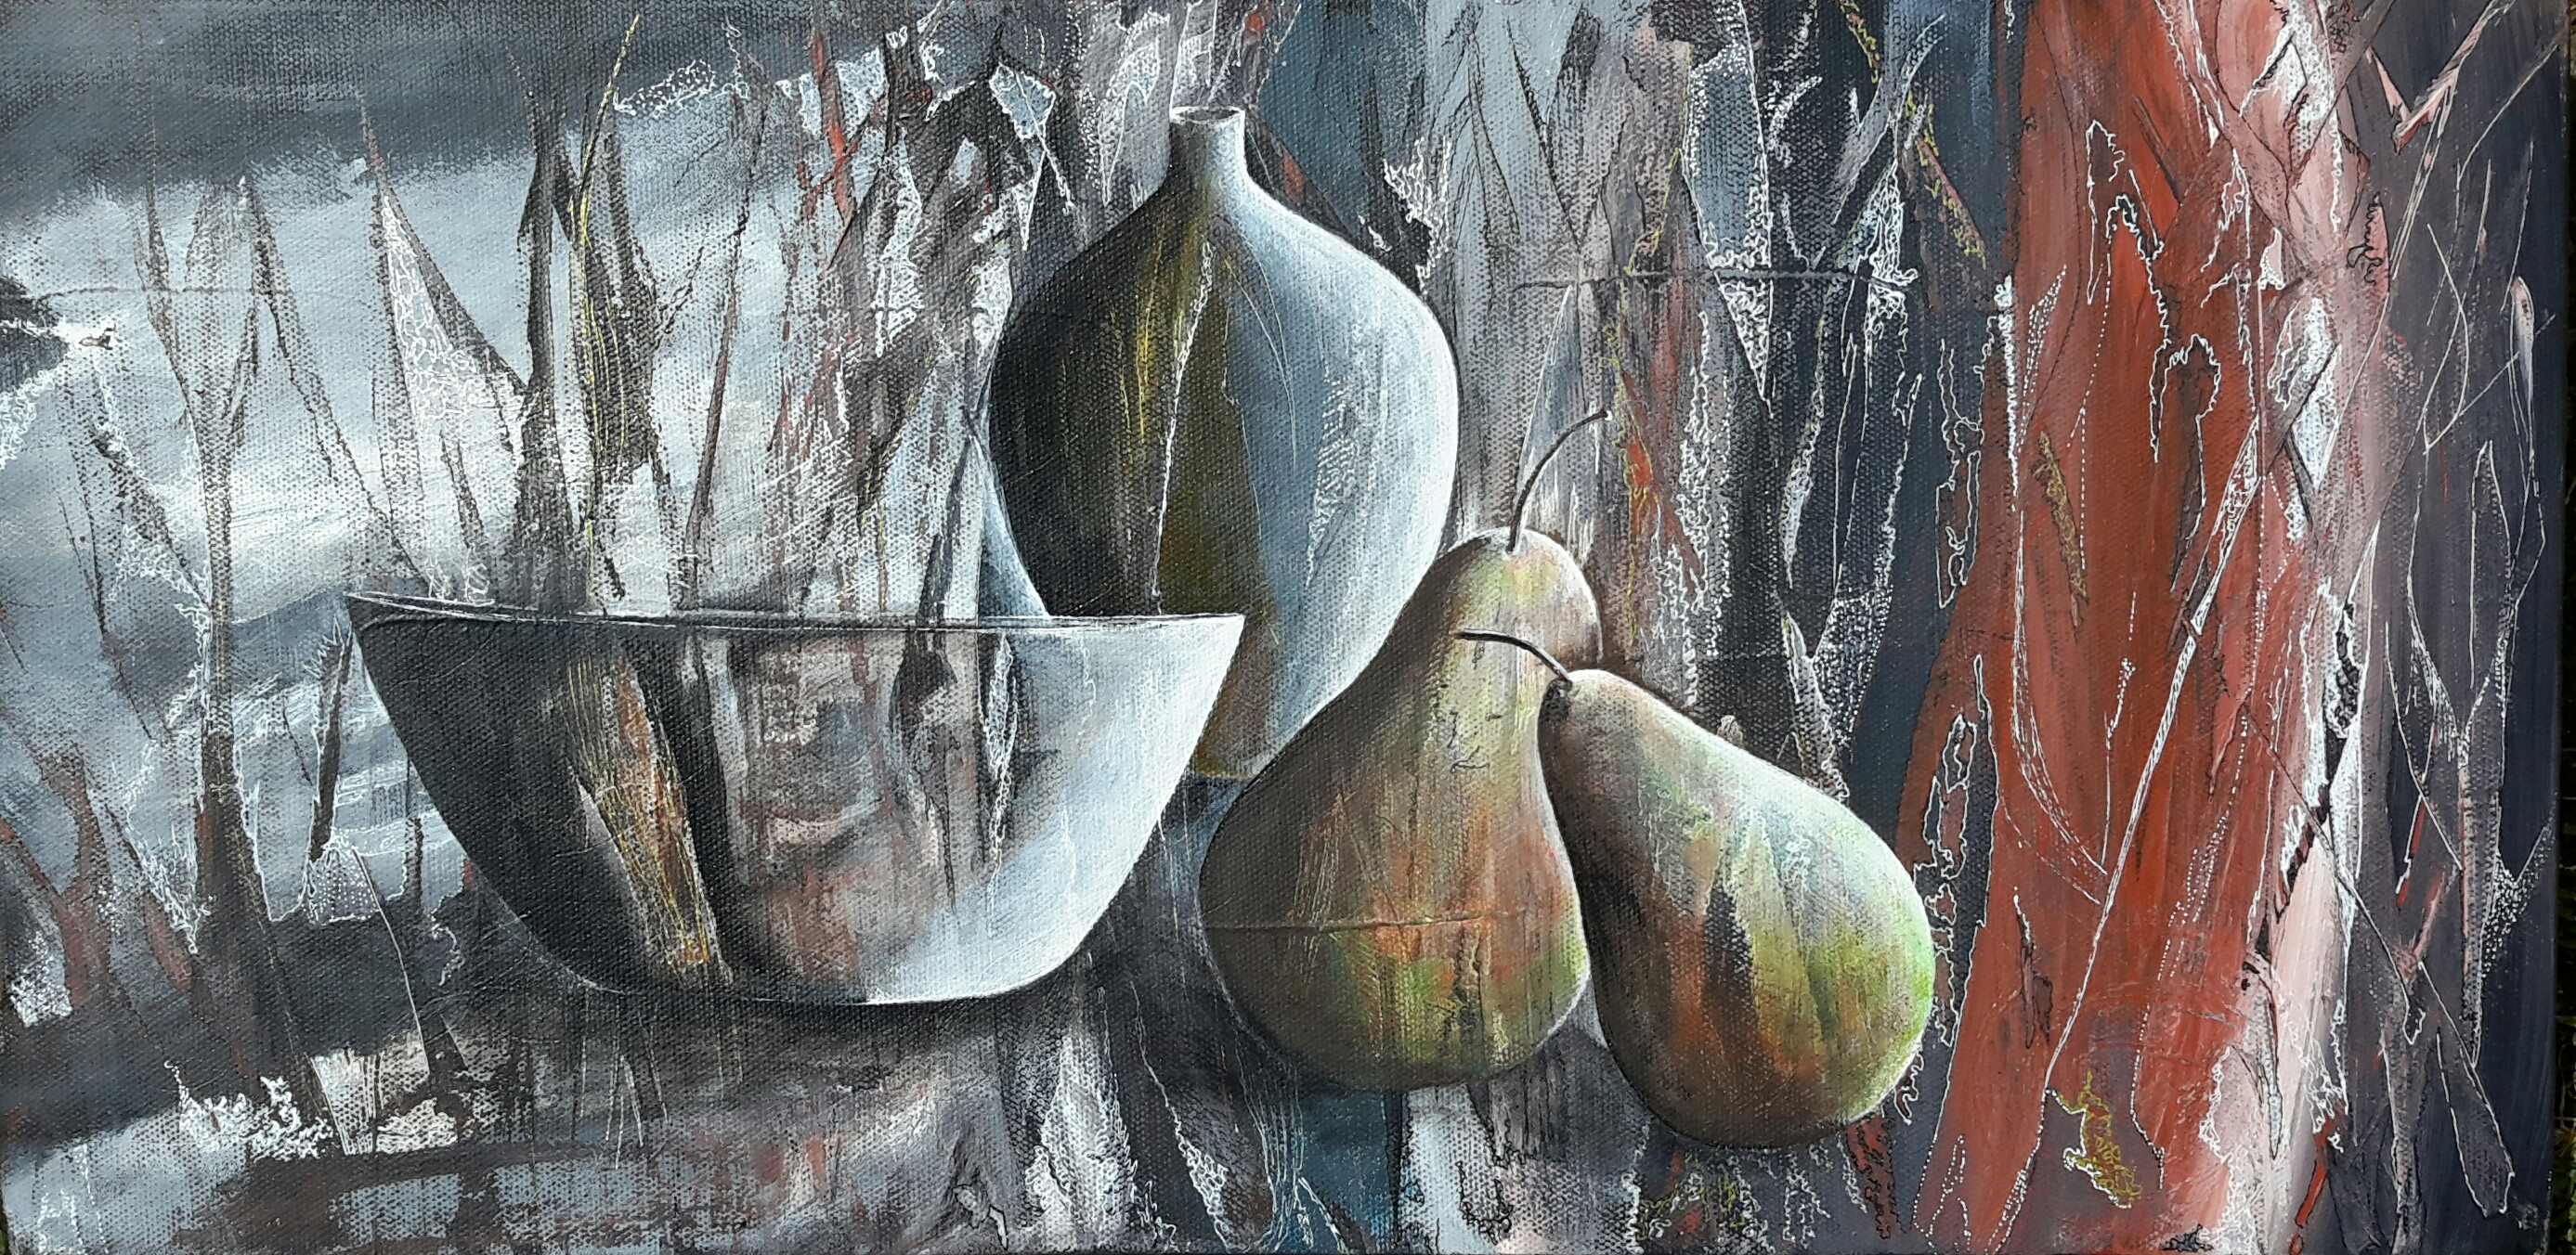 Vessel and Pears 2018